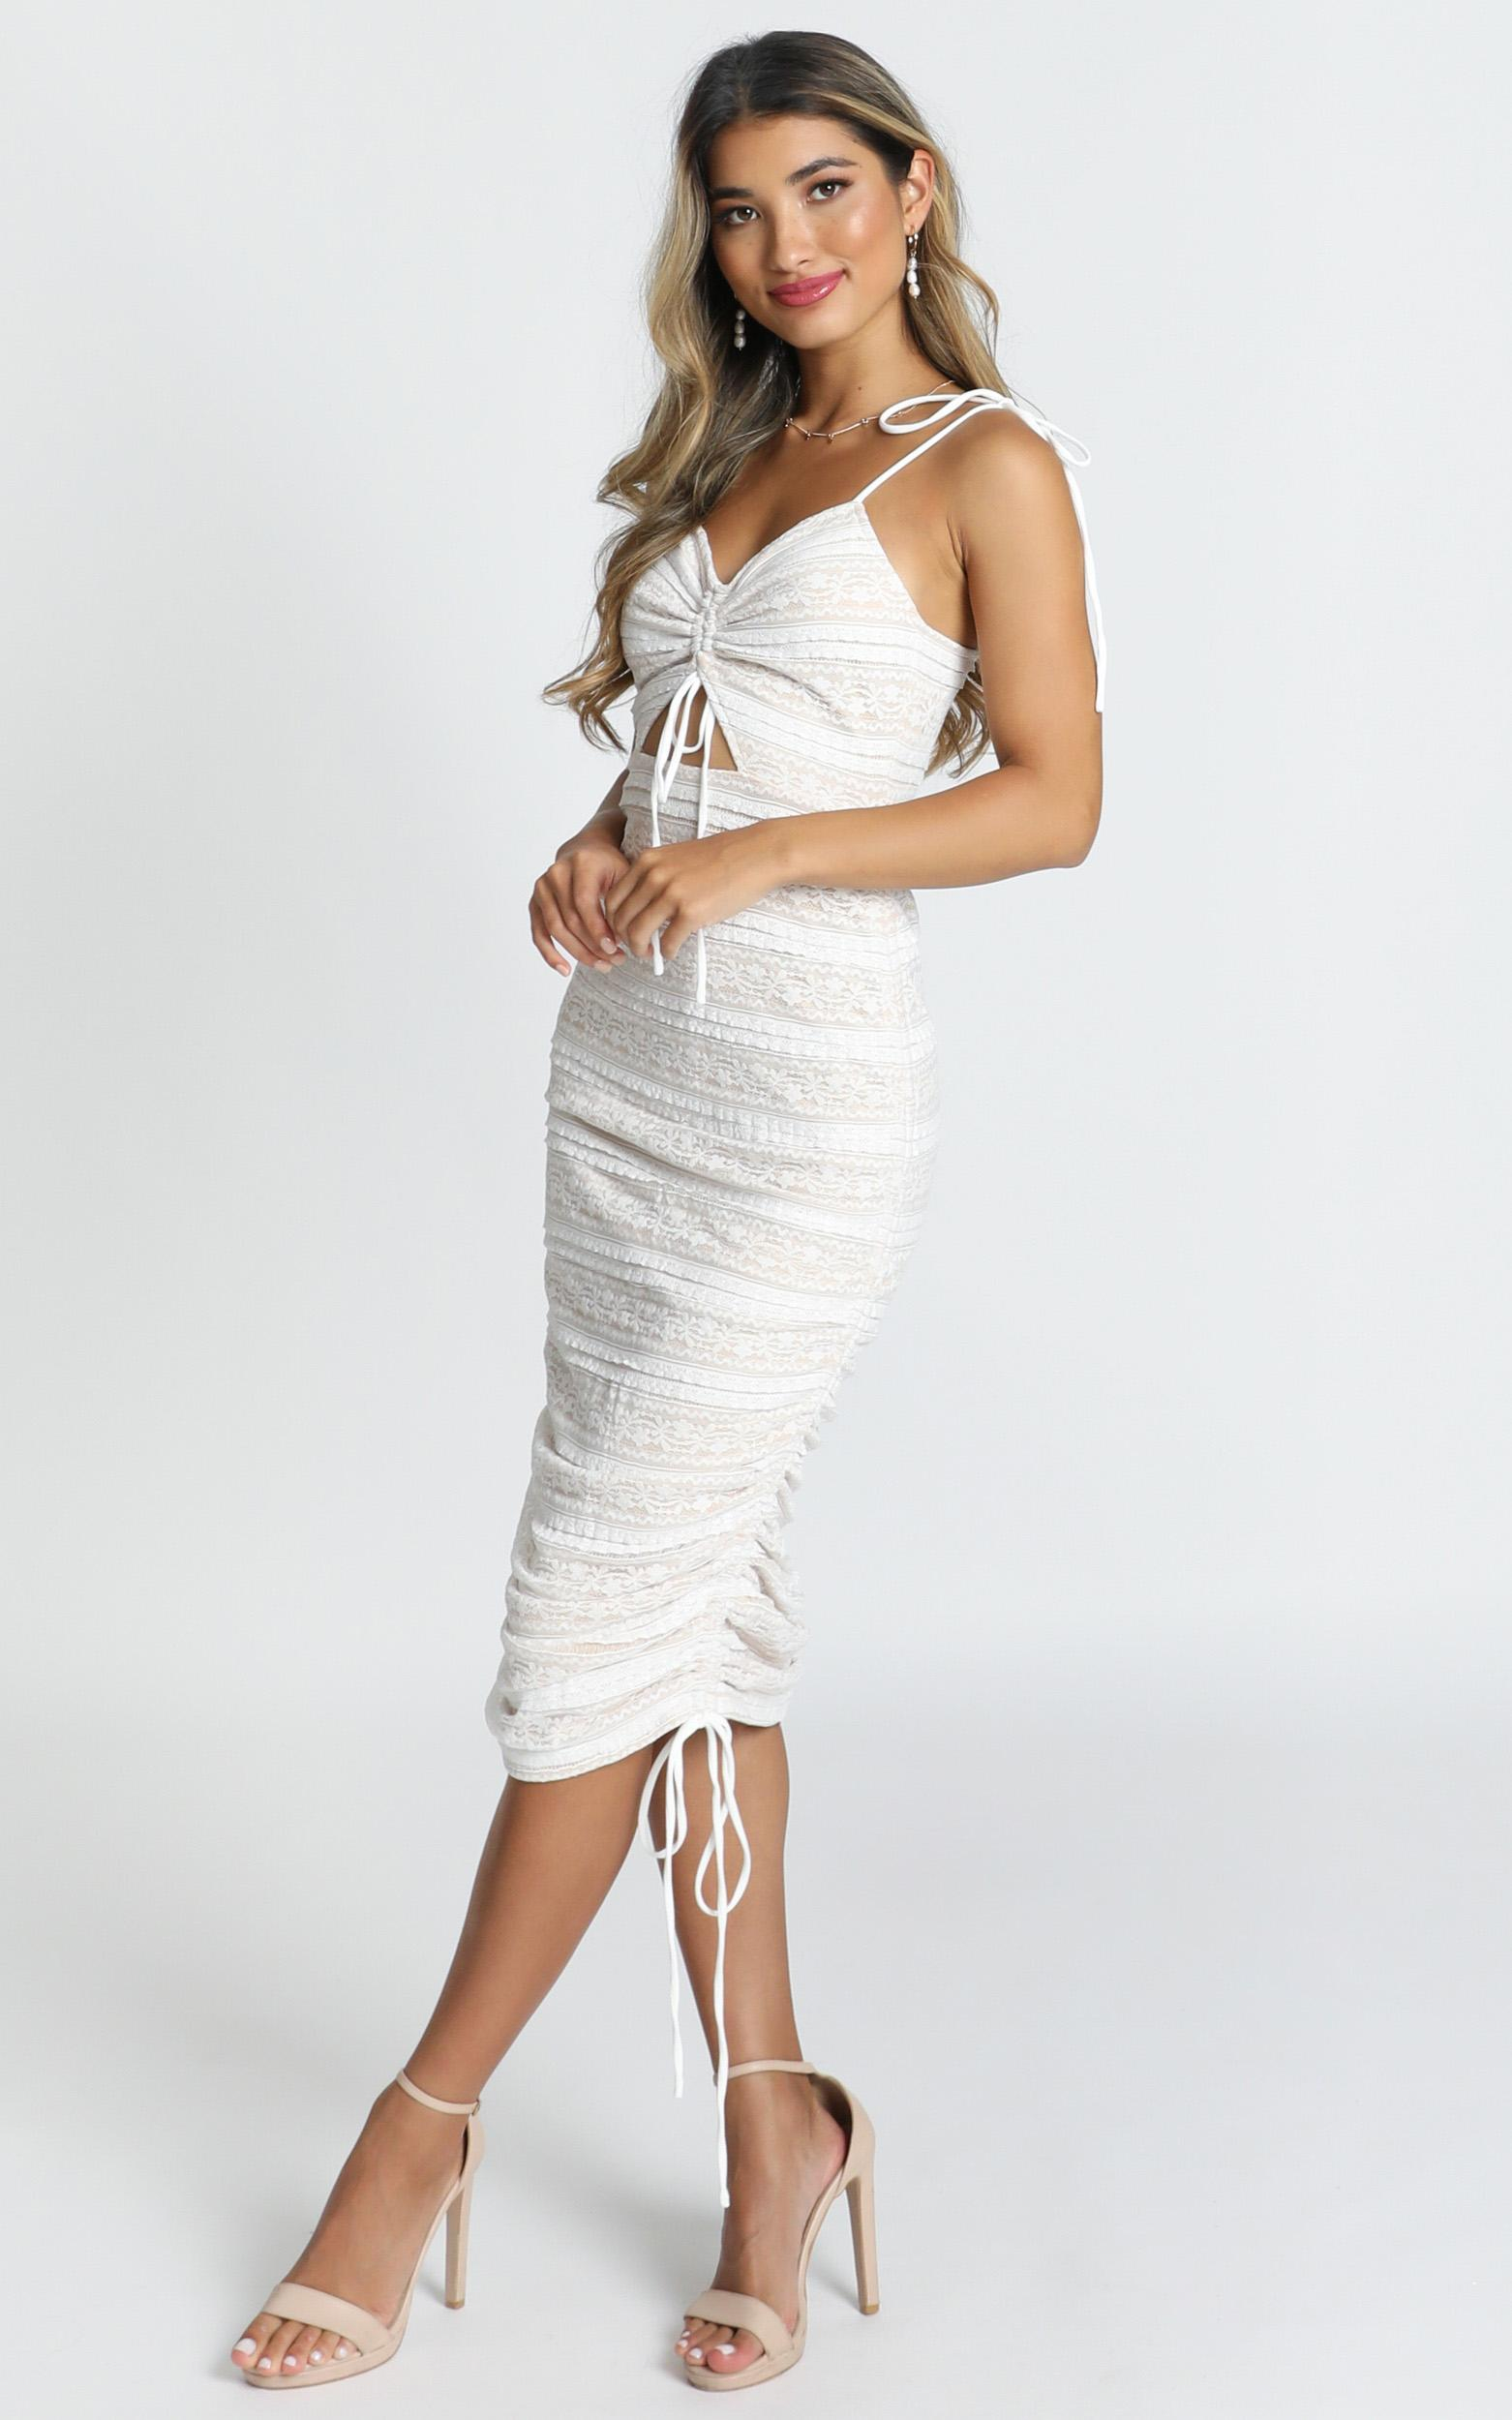 Dont Slip Away Dress in white lace - 20 (XXXXL), White, hi-res image number null